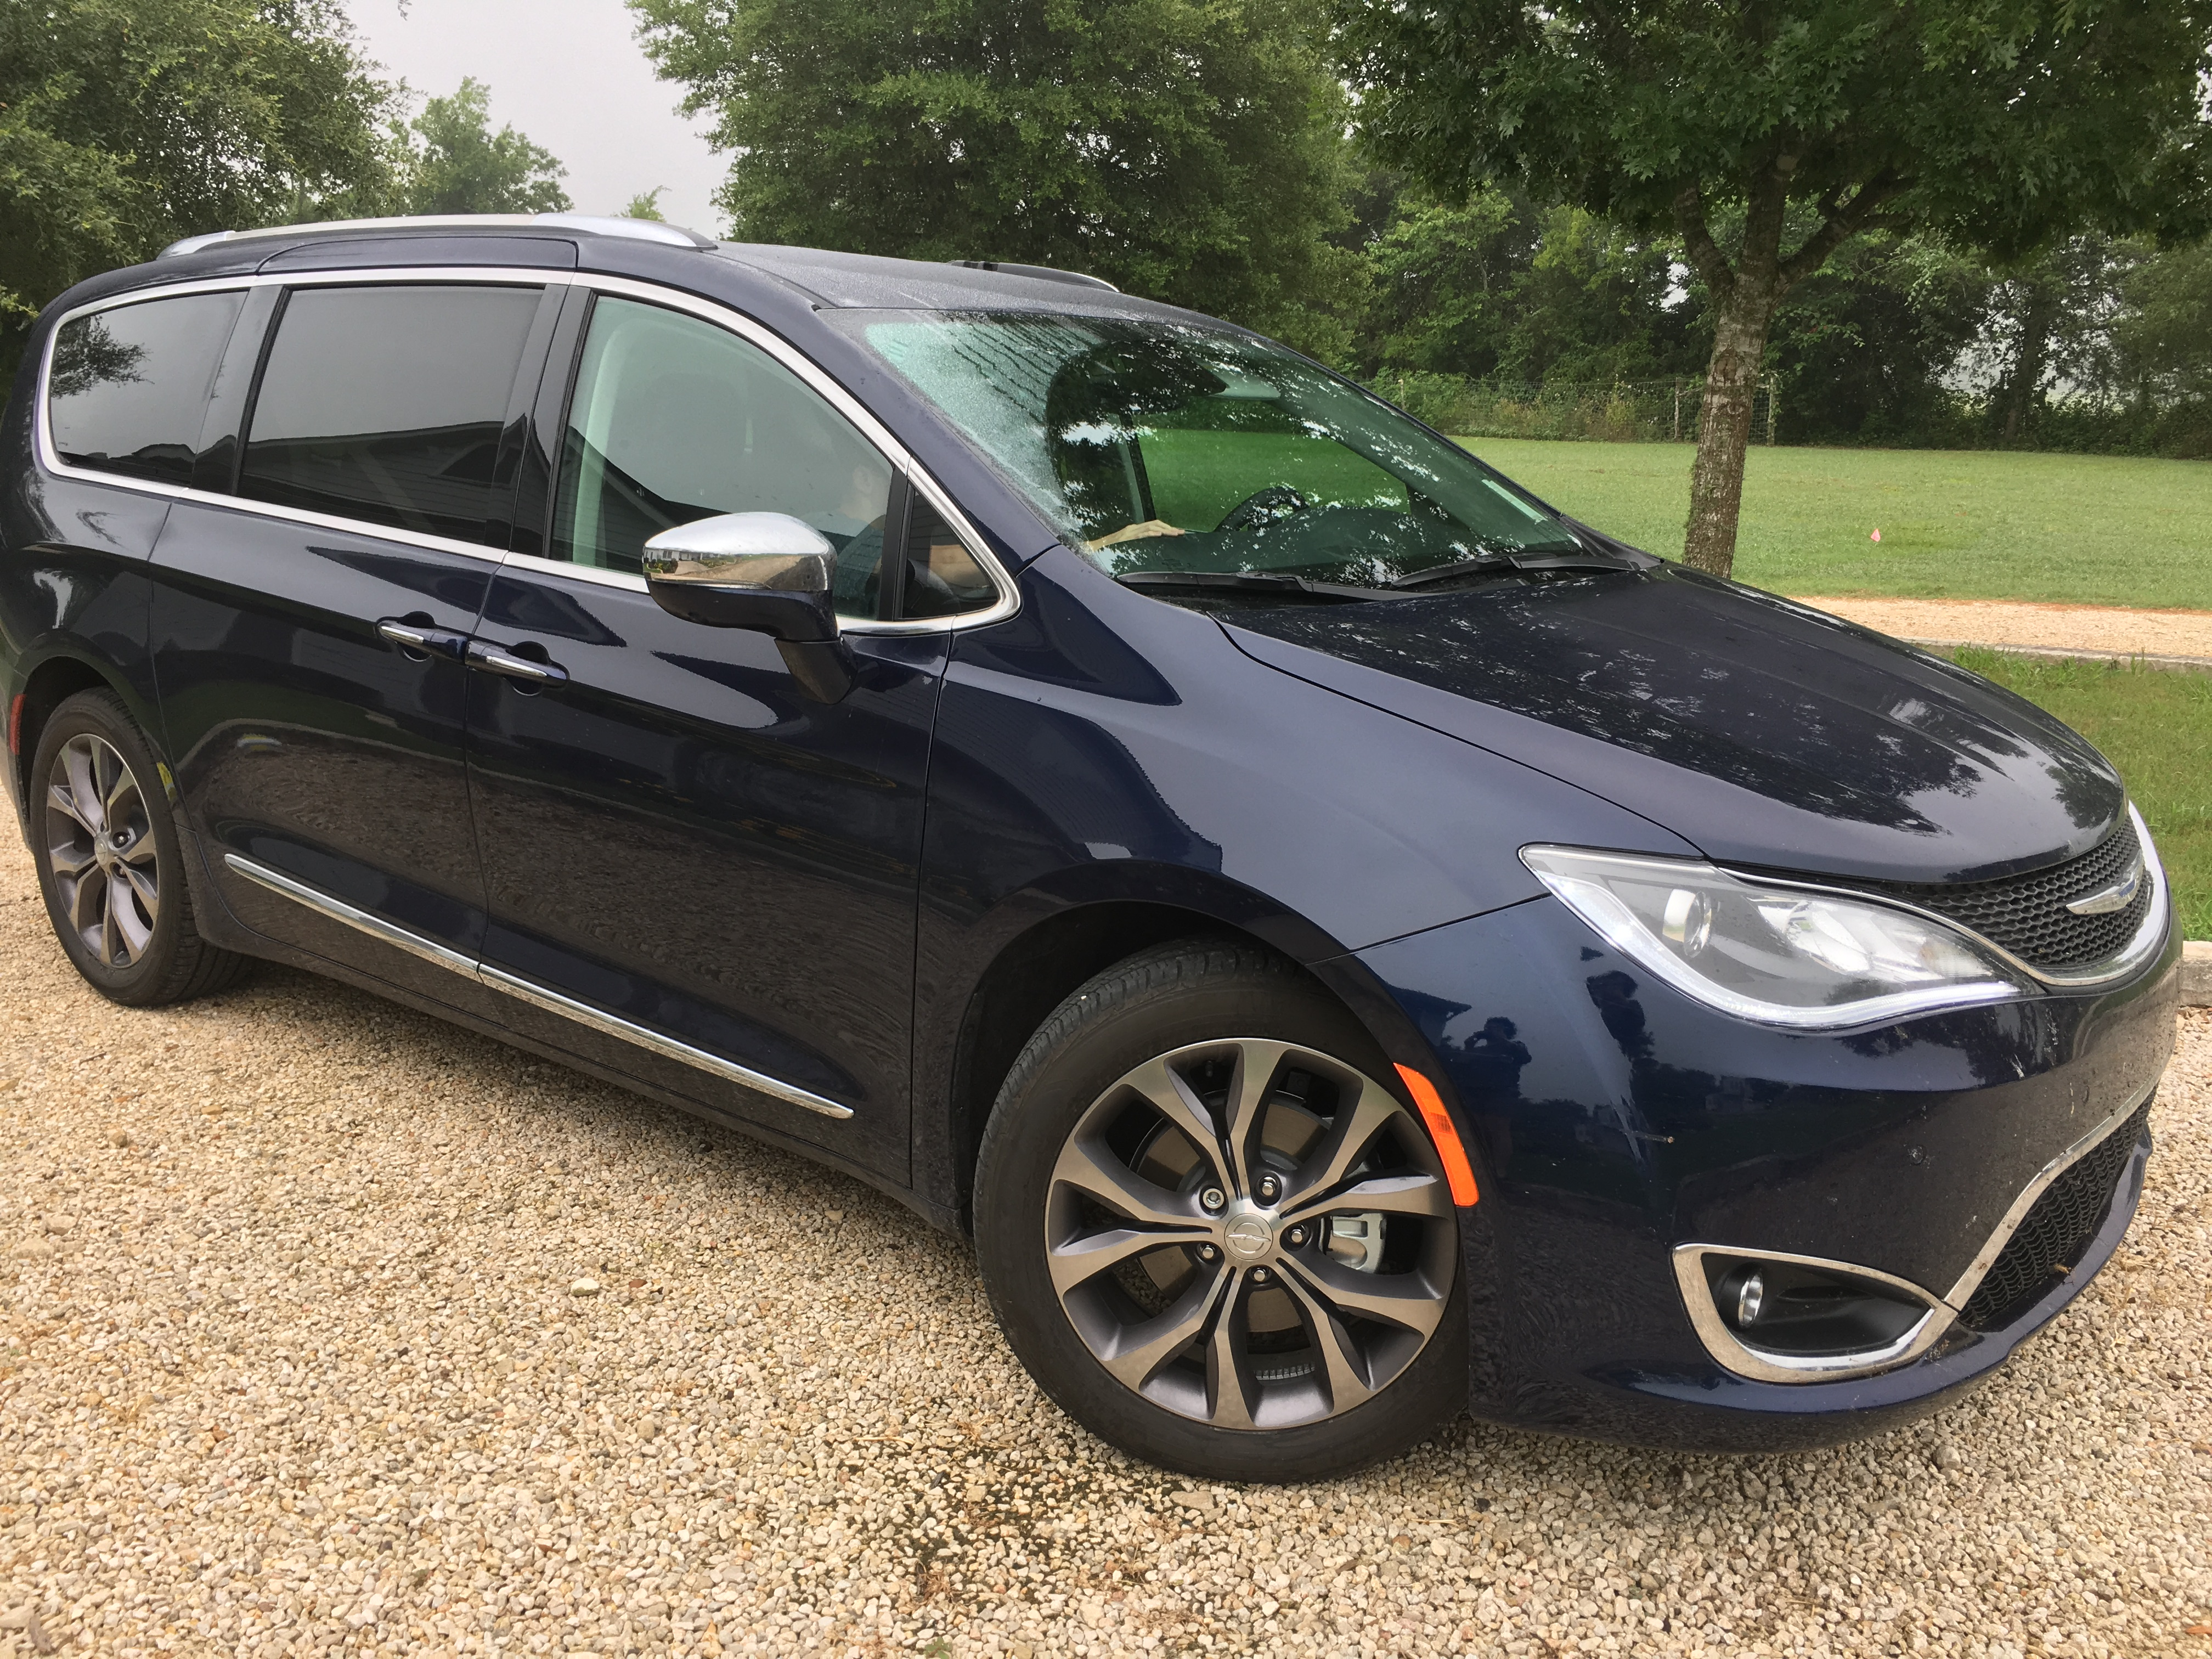 chrysler pacifica minivan, a car that might be available as a one way rental